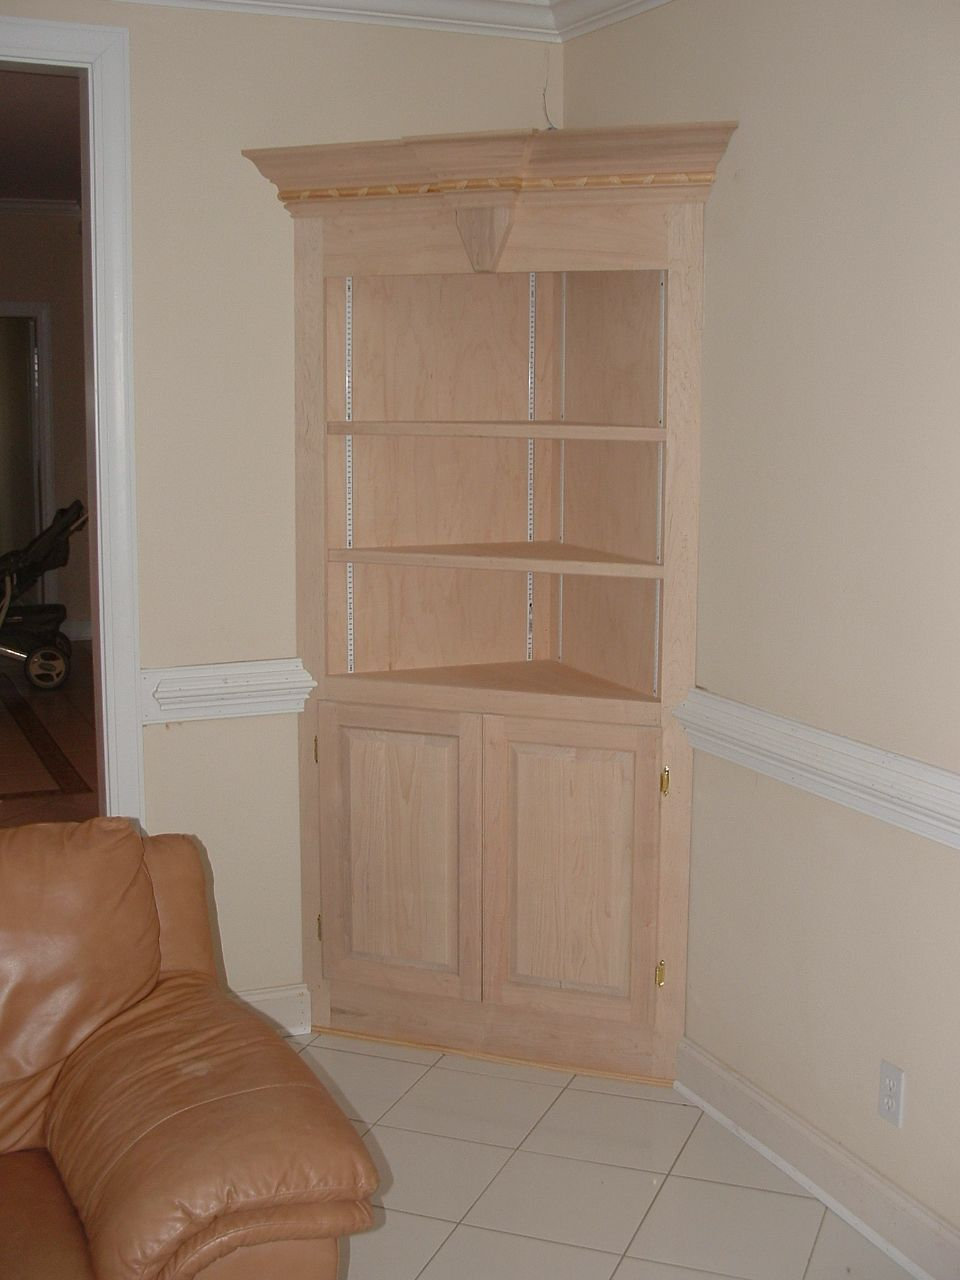 Using kitchen cabinets in the bathroom for storage for Kitchen cupboard units